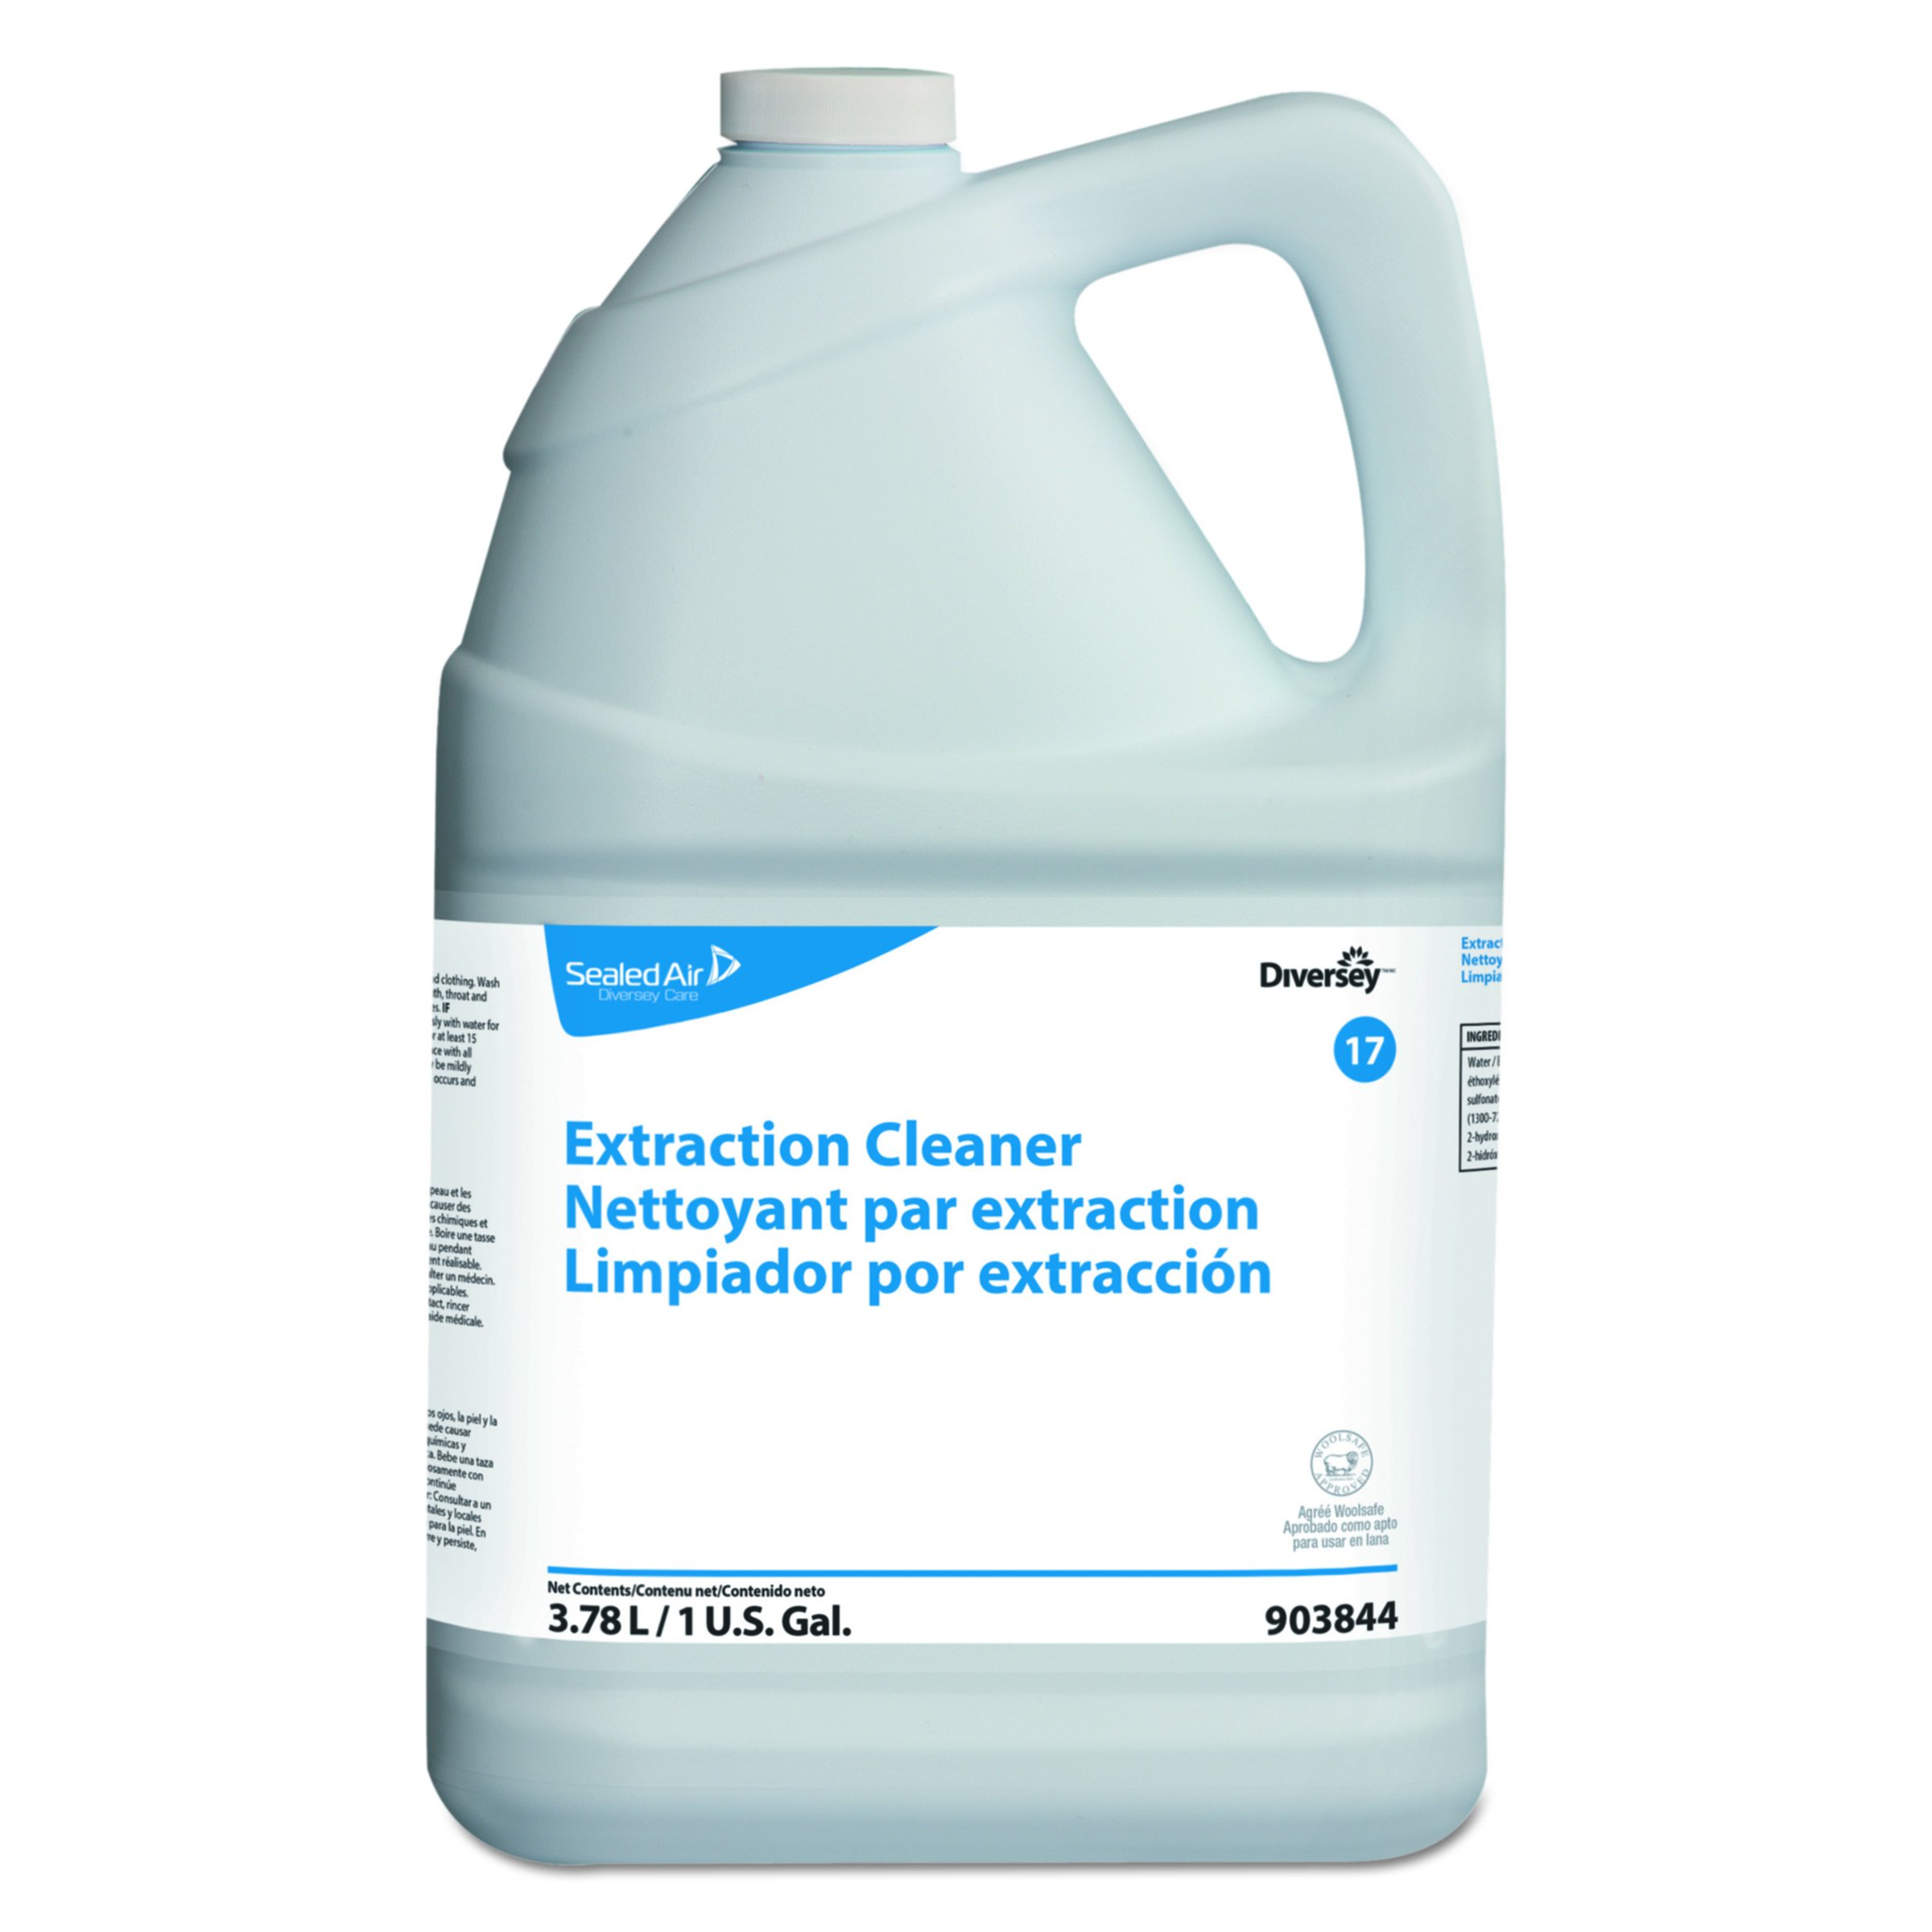 Diversey 903844 Carpet Extraction Cleaner, Floral Scent, Liquid, 1 gal Container (Case of 4)